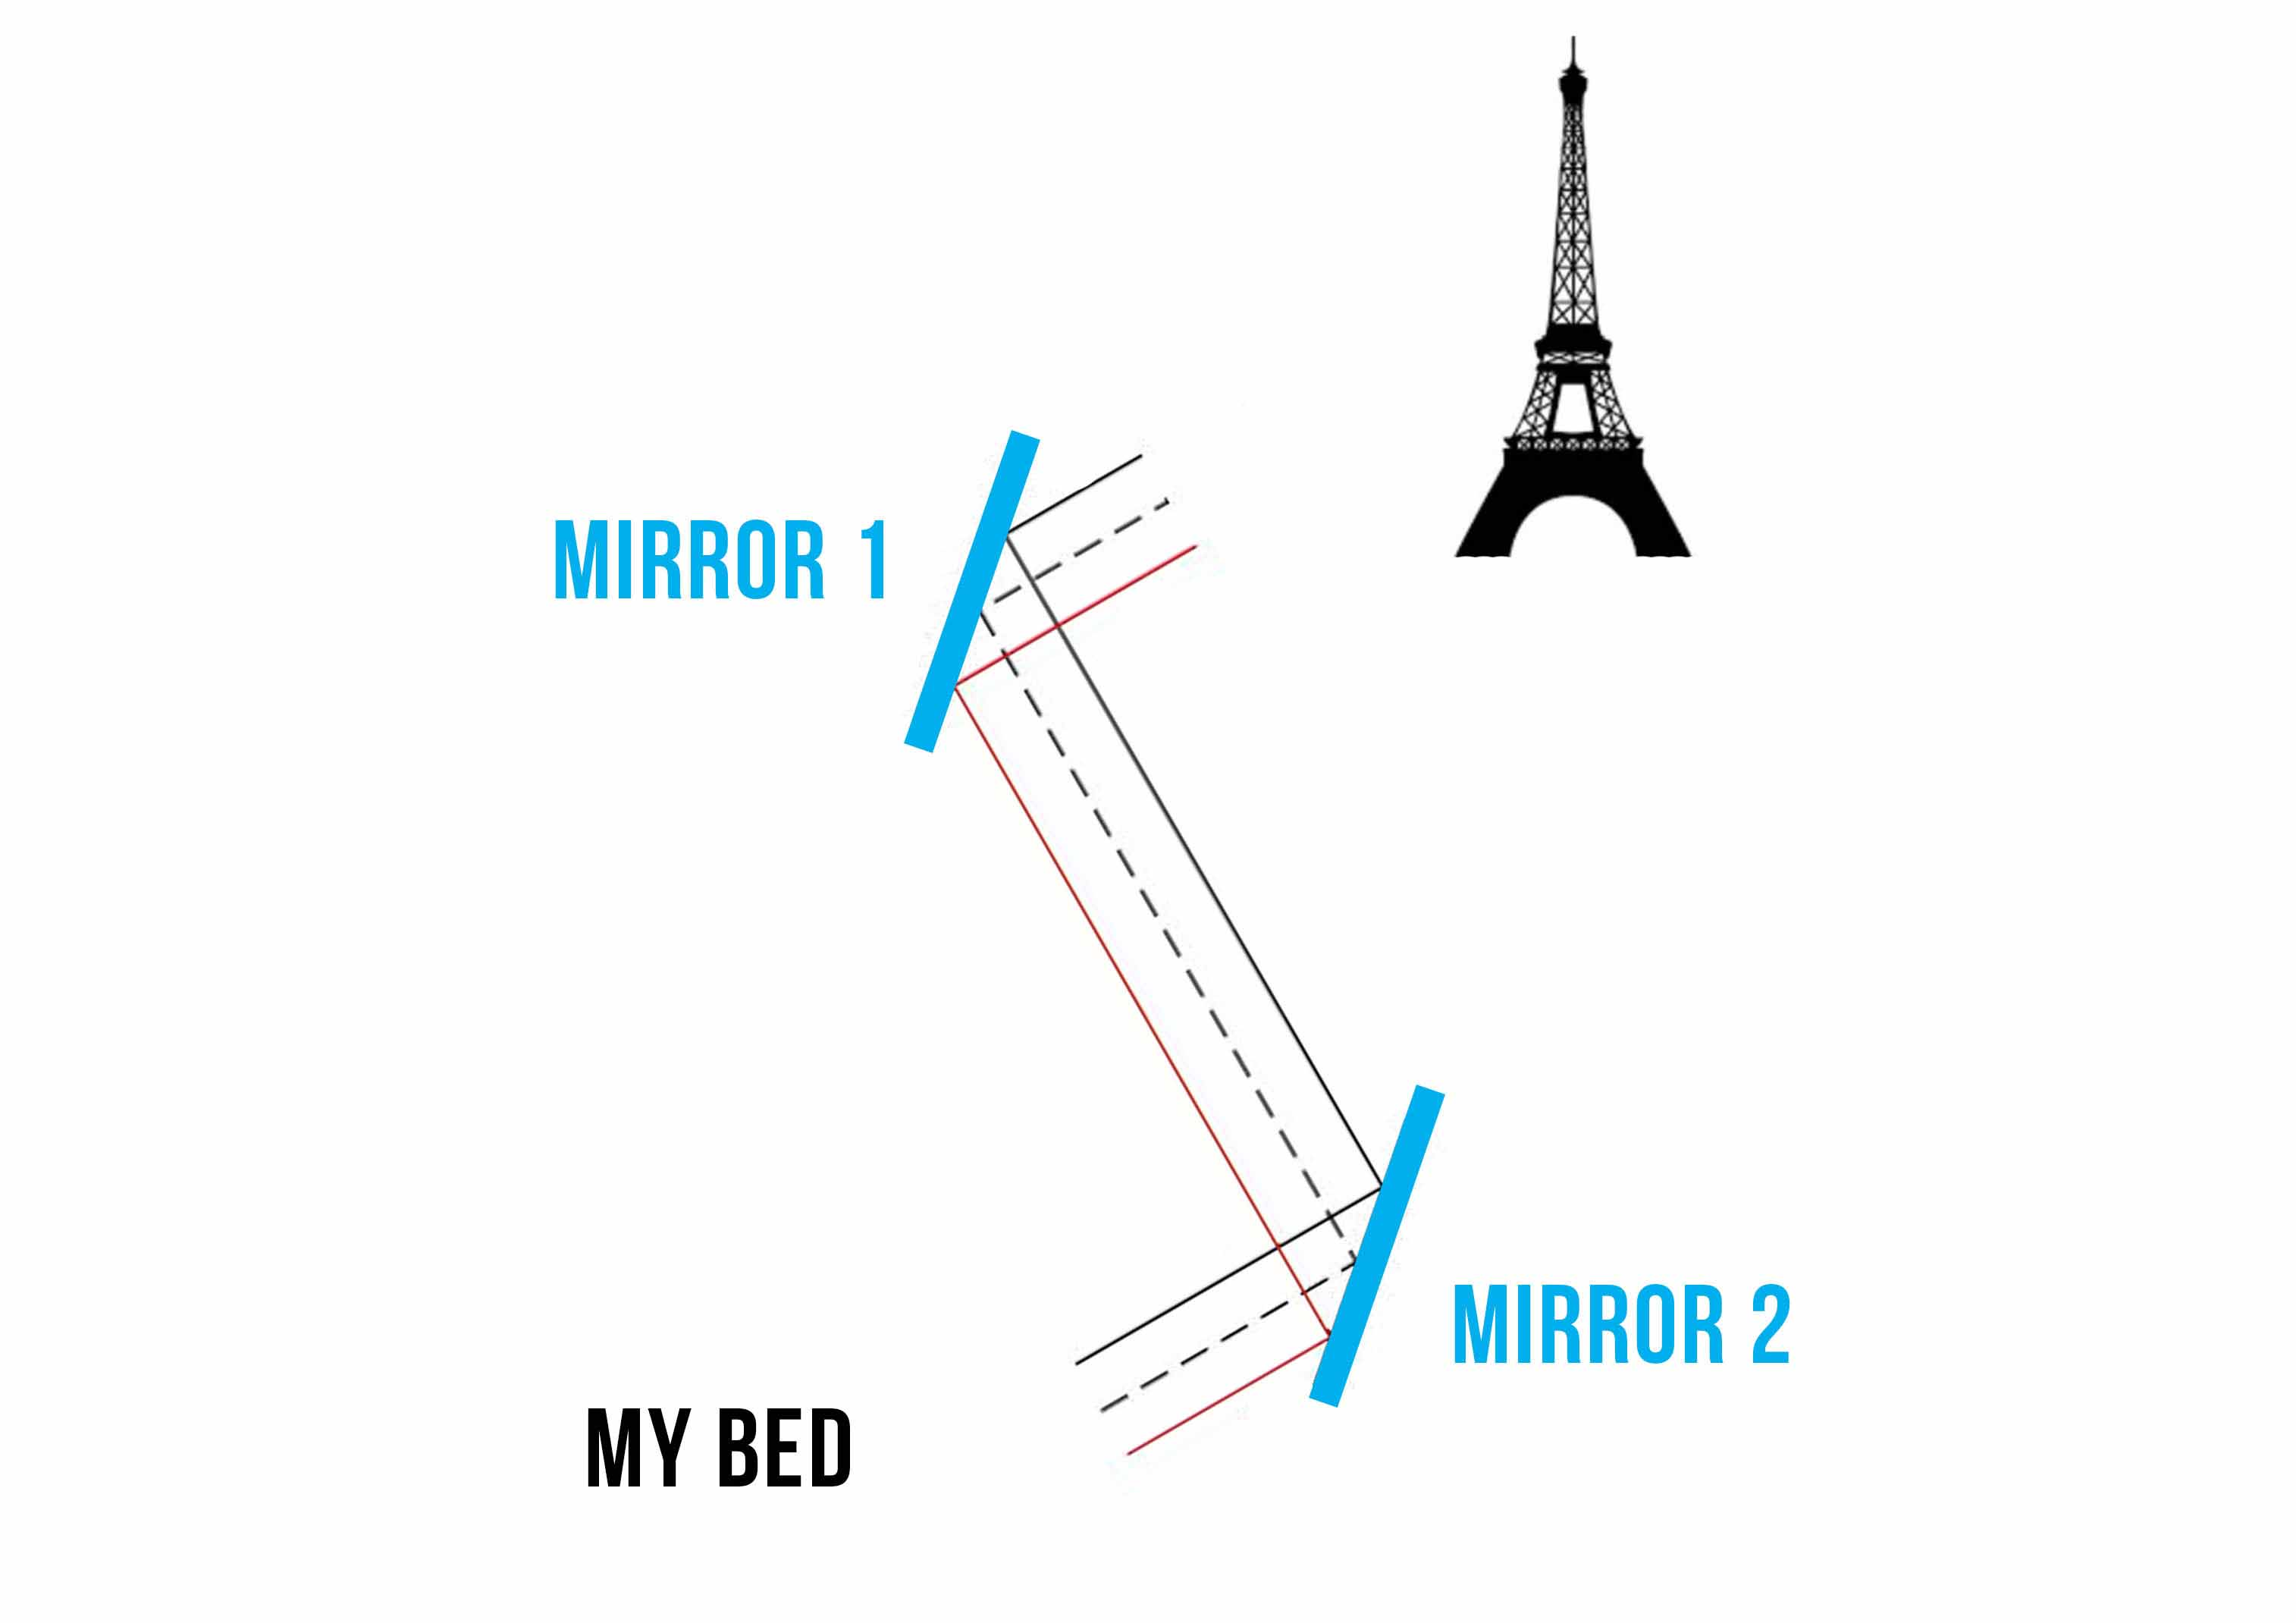 A diagram of French Redditor Lurluberlu's bed, two giant periscope mirrors, and the Eiffel Tower in Paris, France.